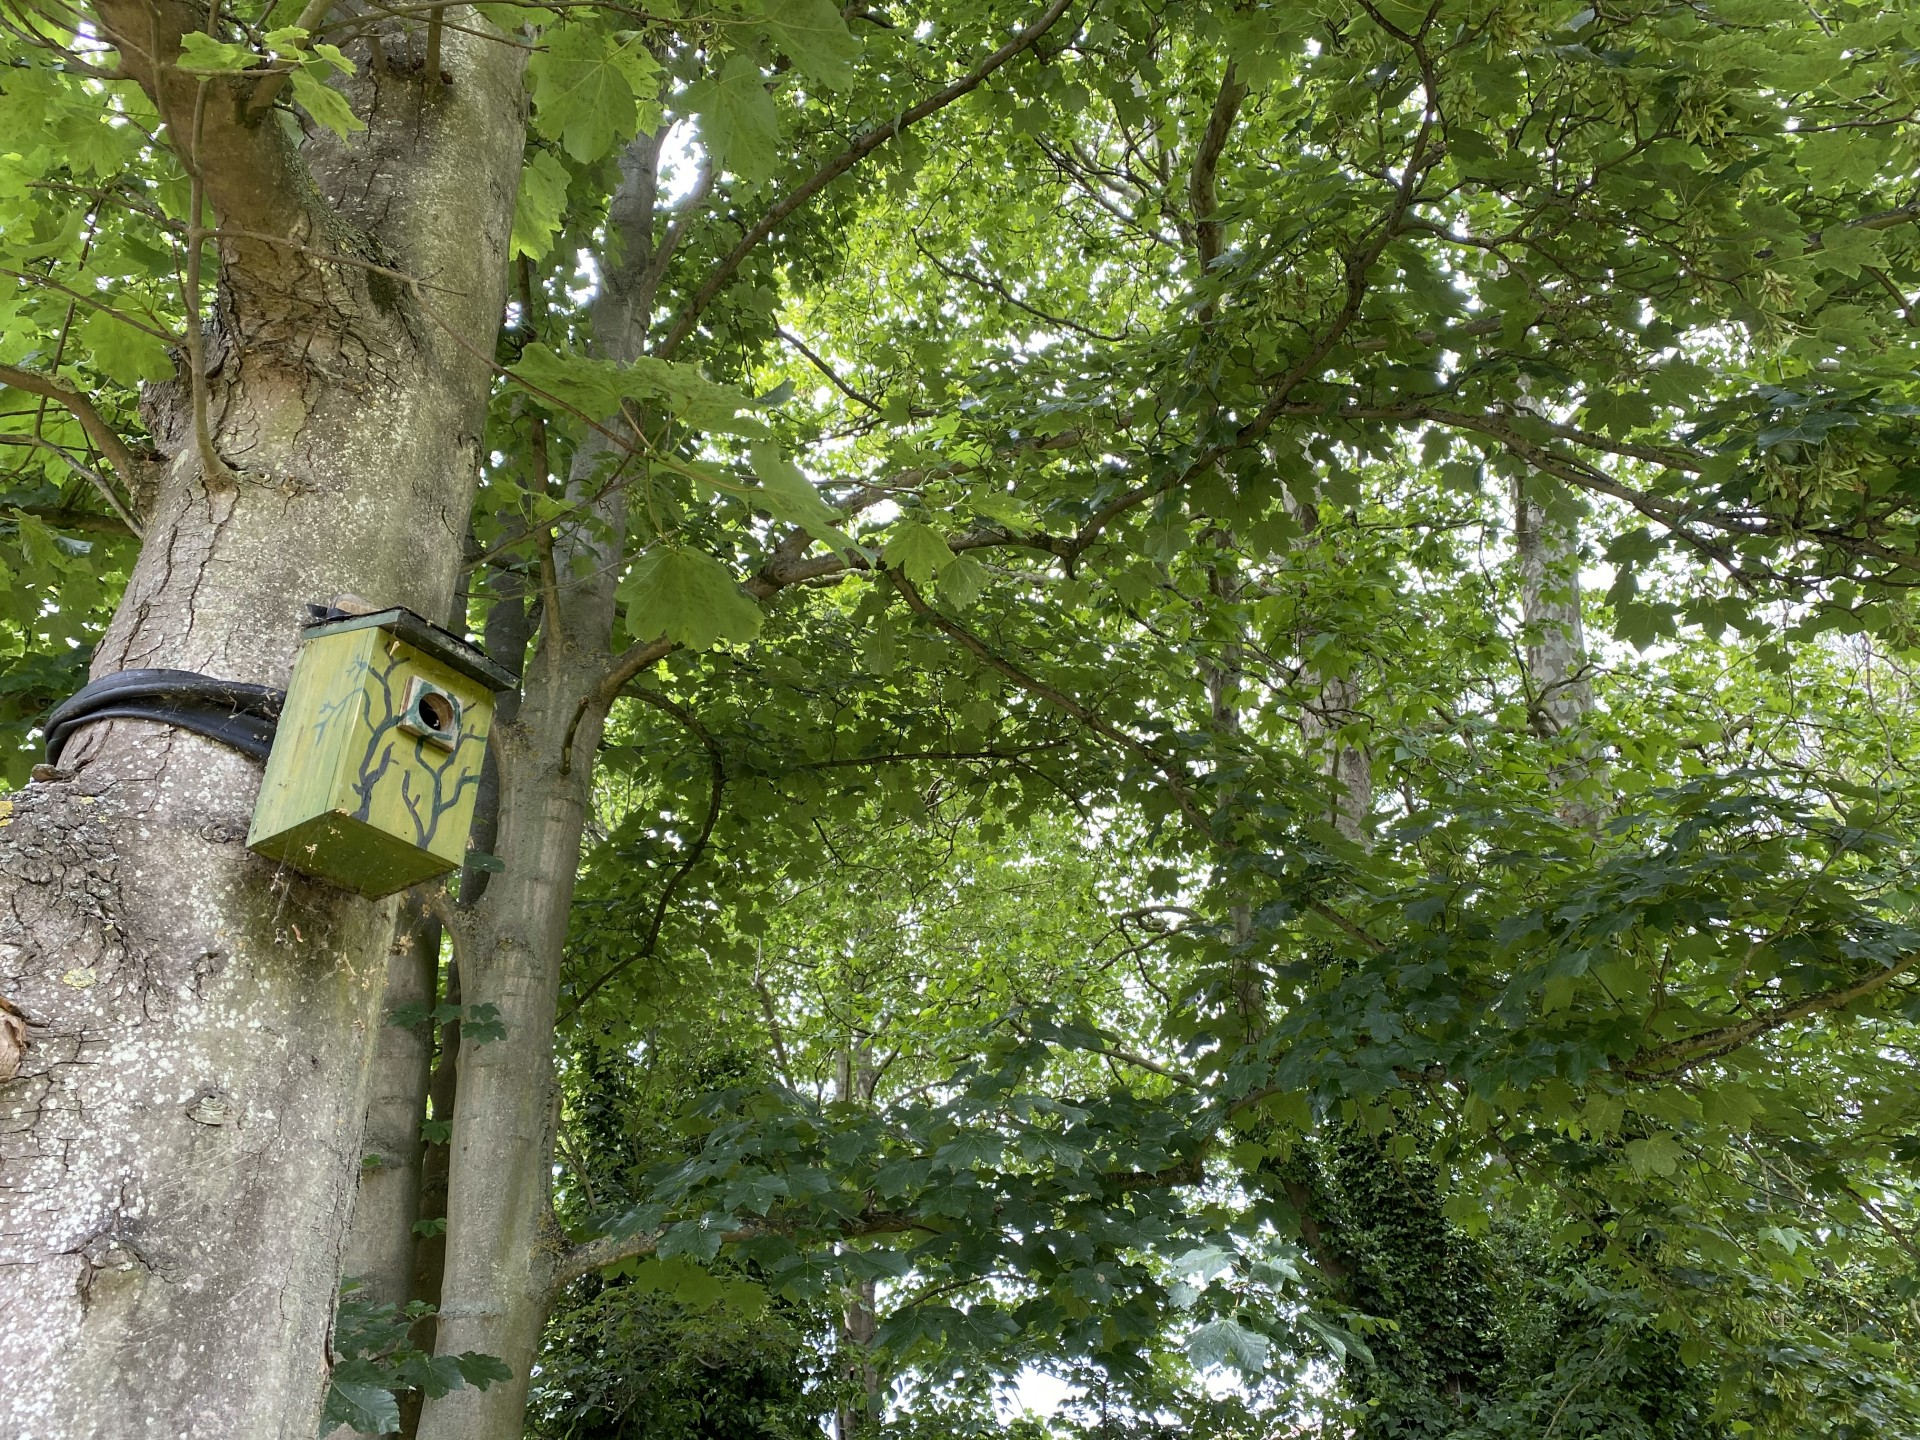 Bird boxes in trees.